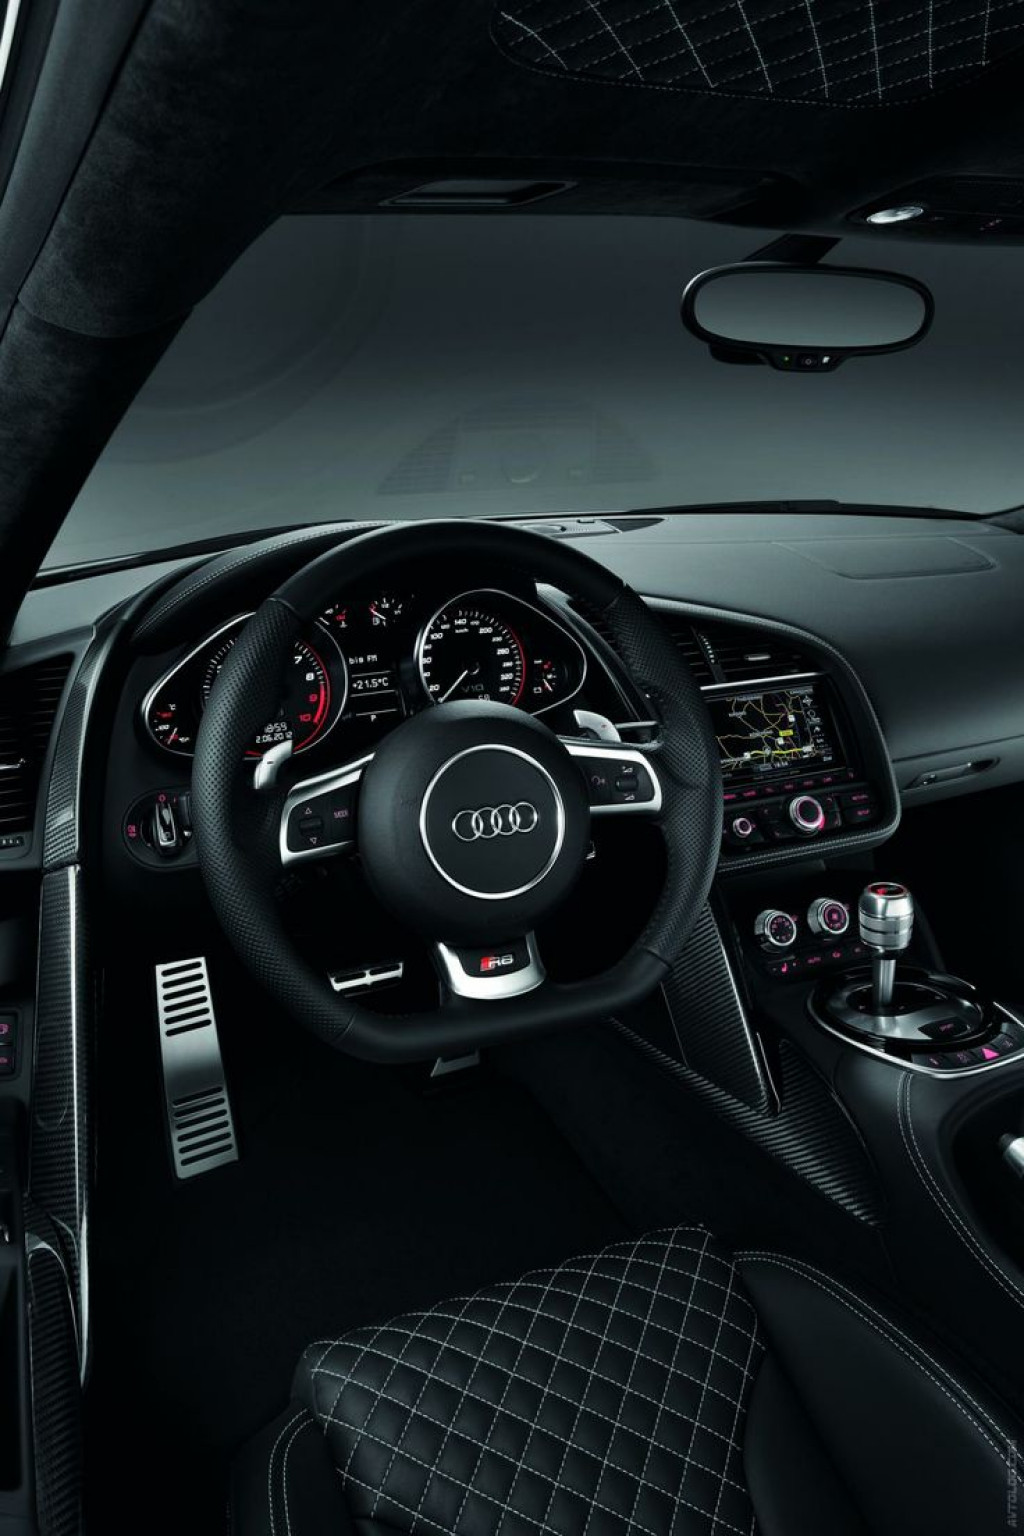 What to choose: Manual Gearbox or Automatic Gearbox?